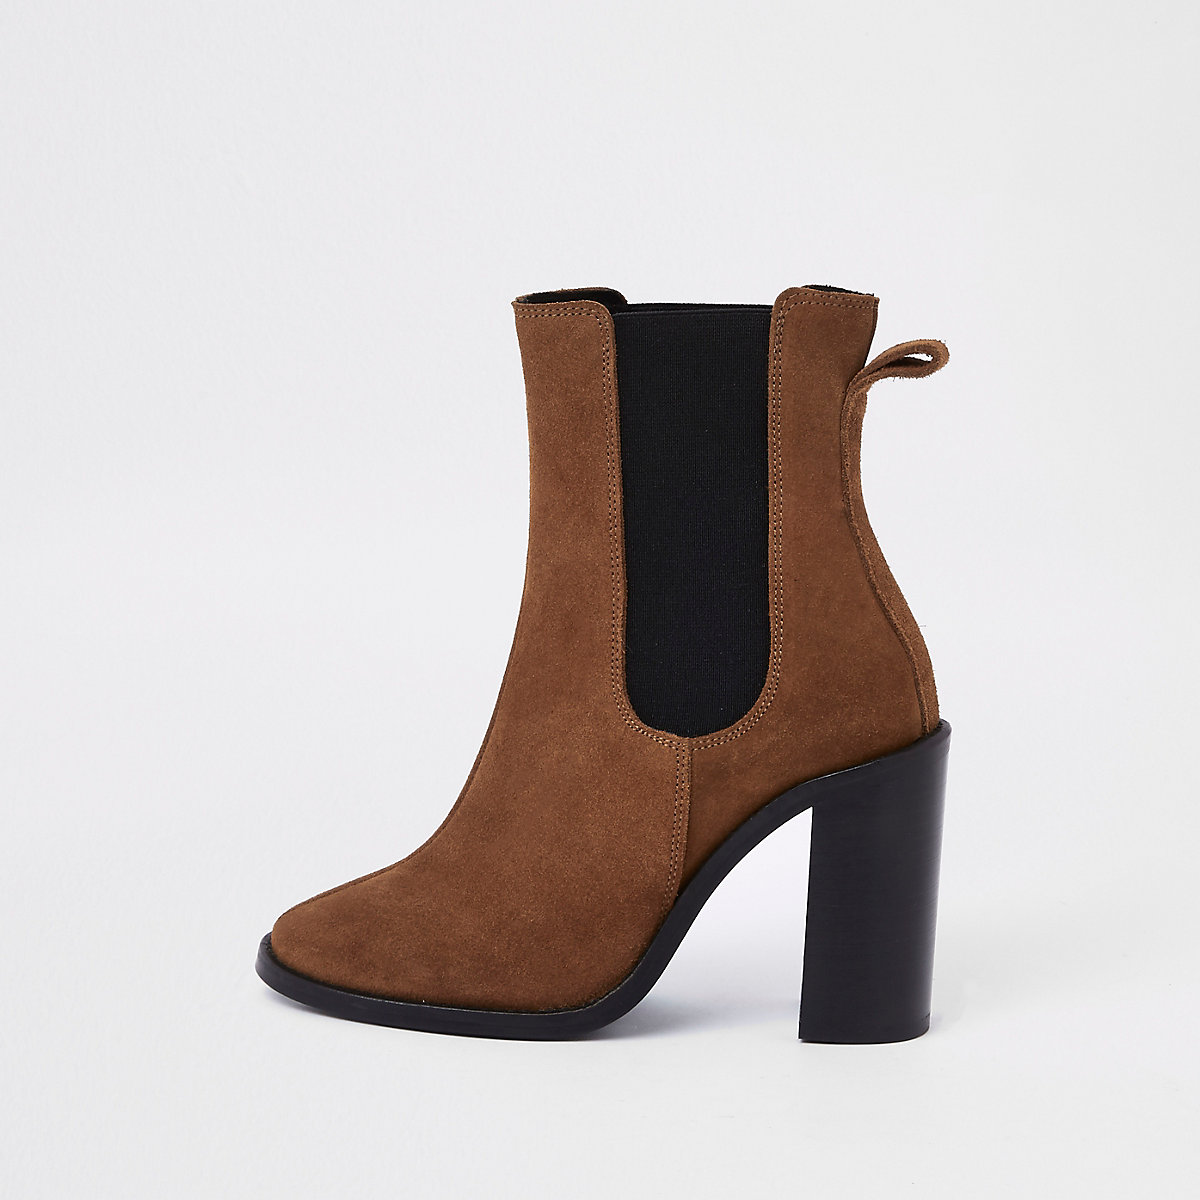 Brown suede ankle boots